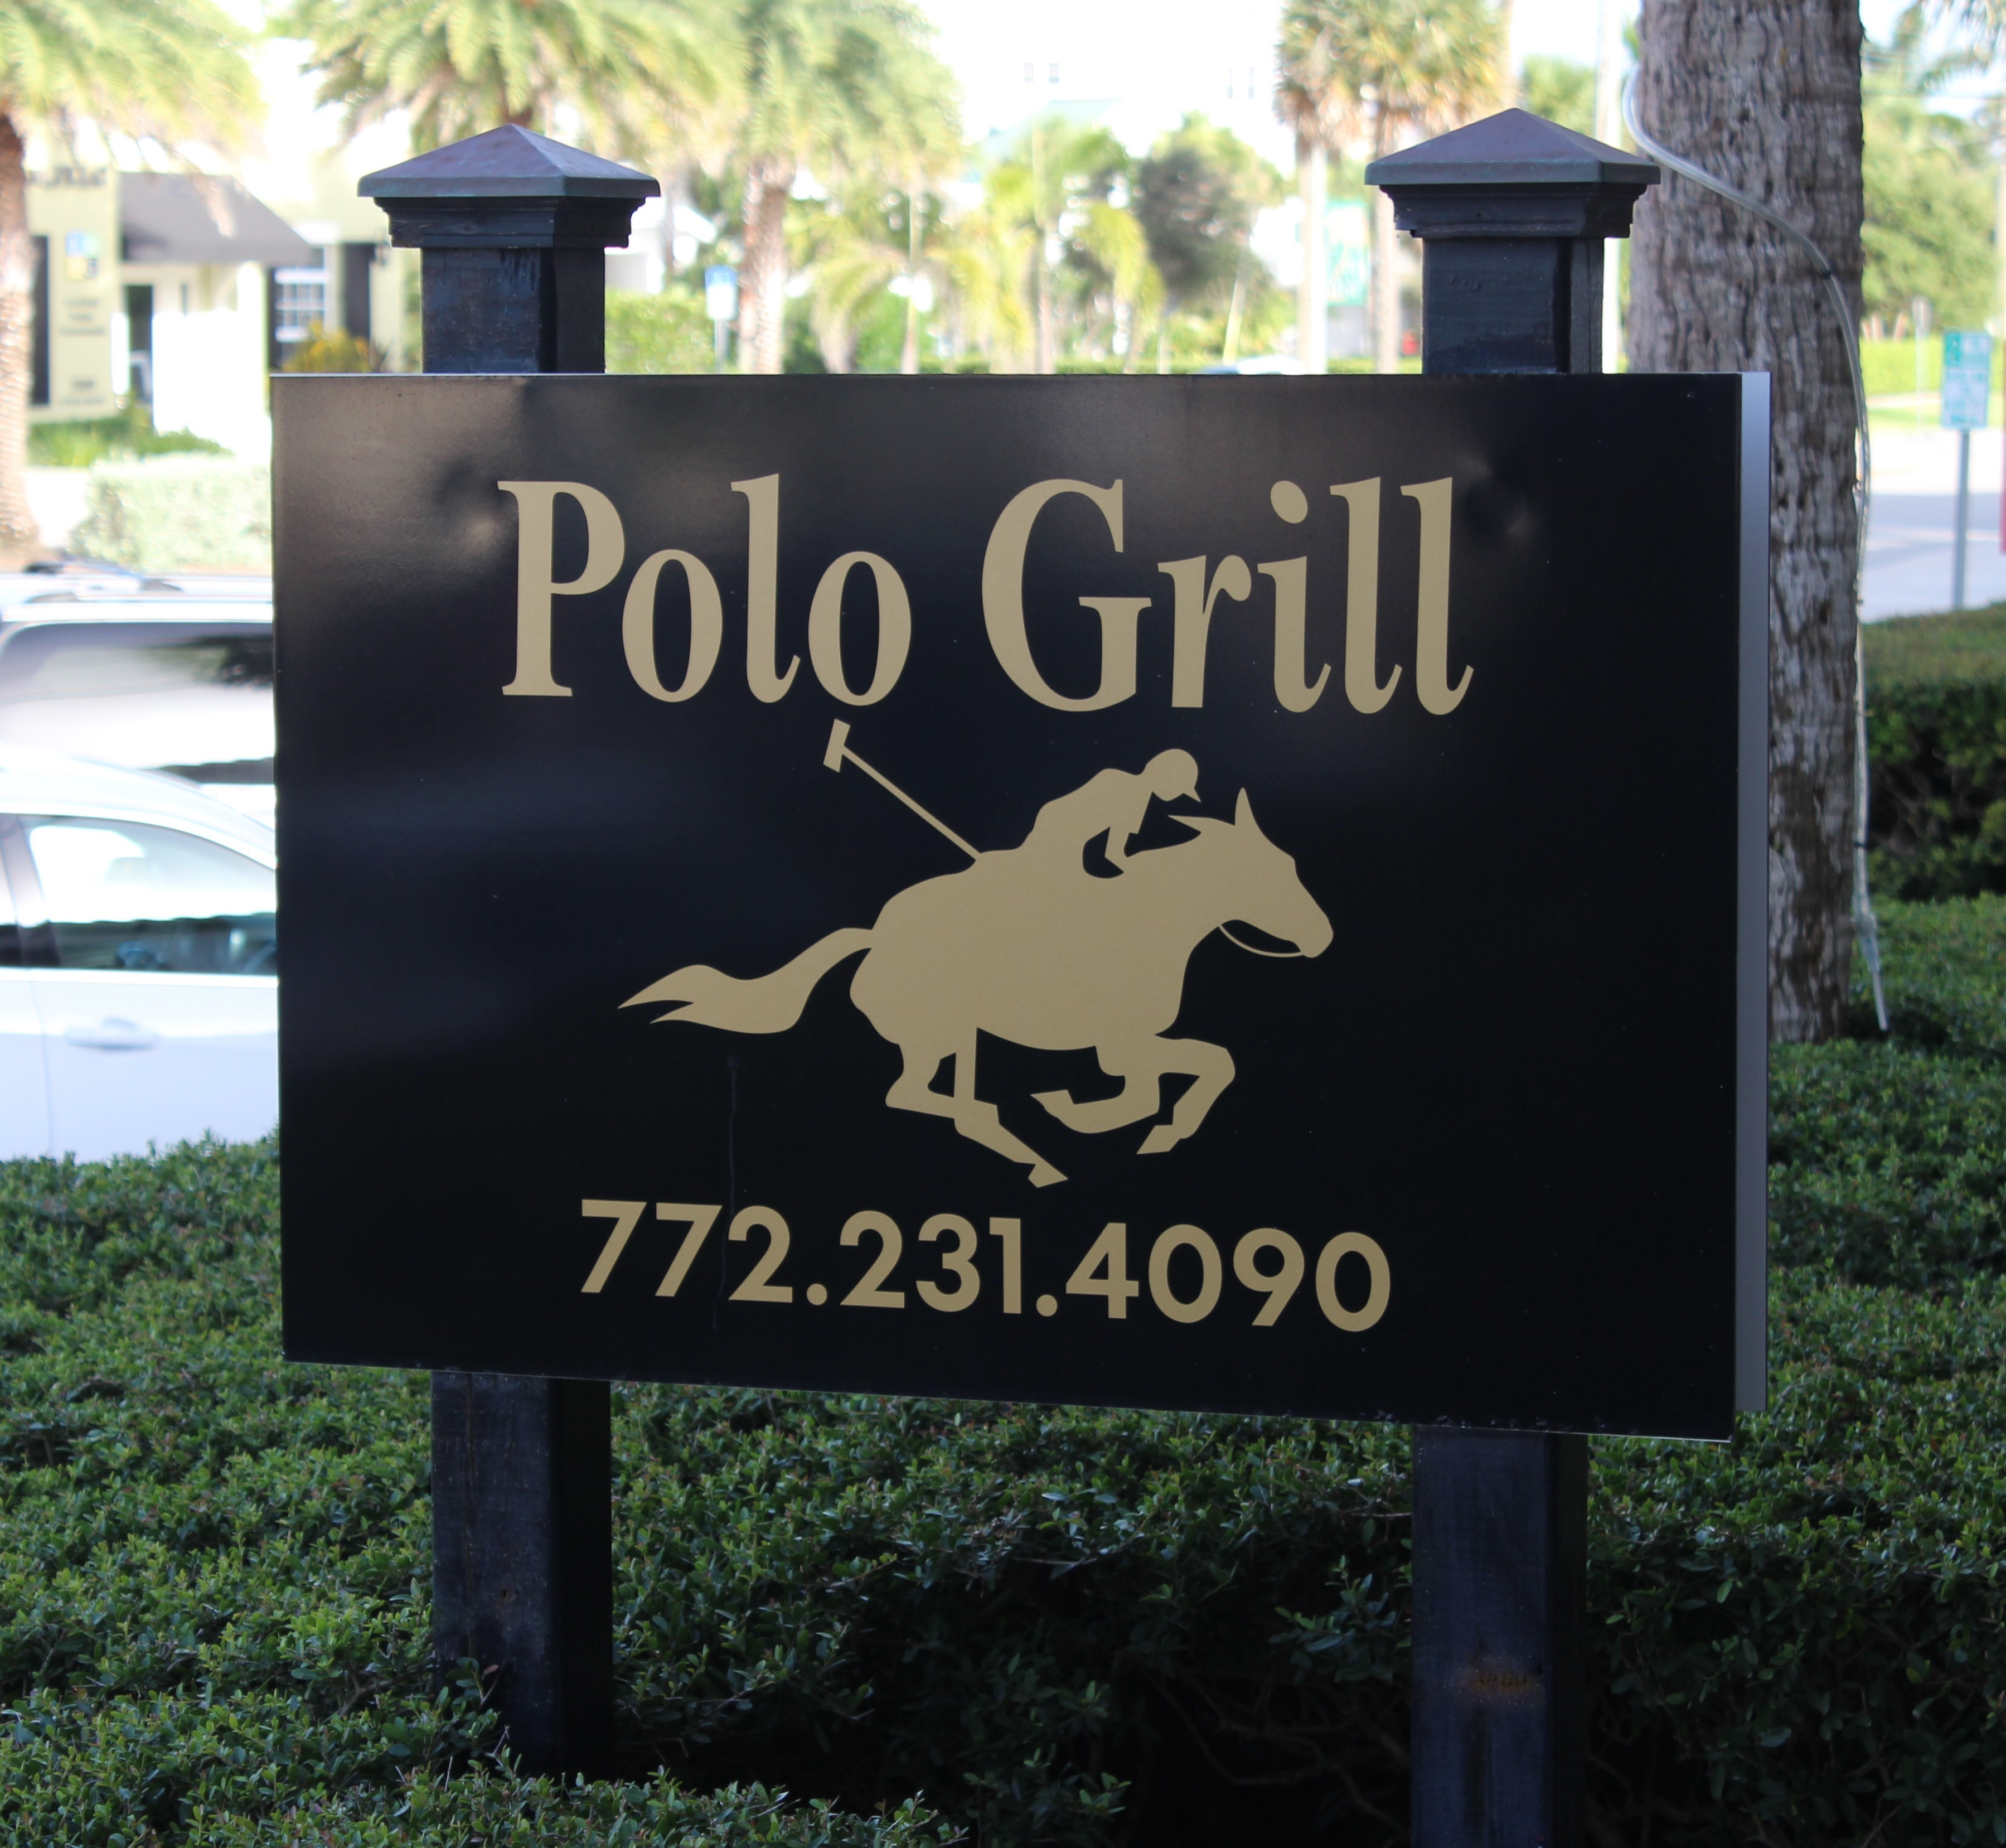 Polo Grill